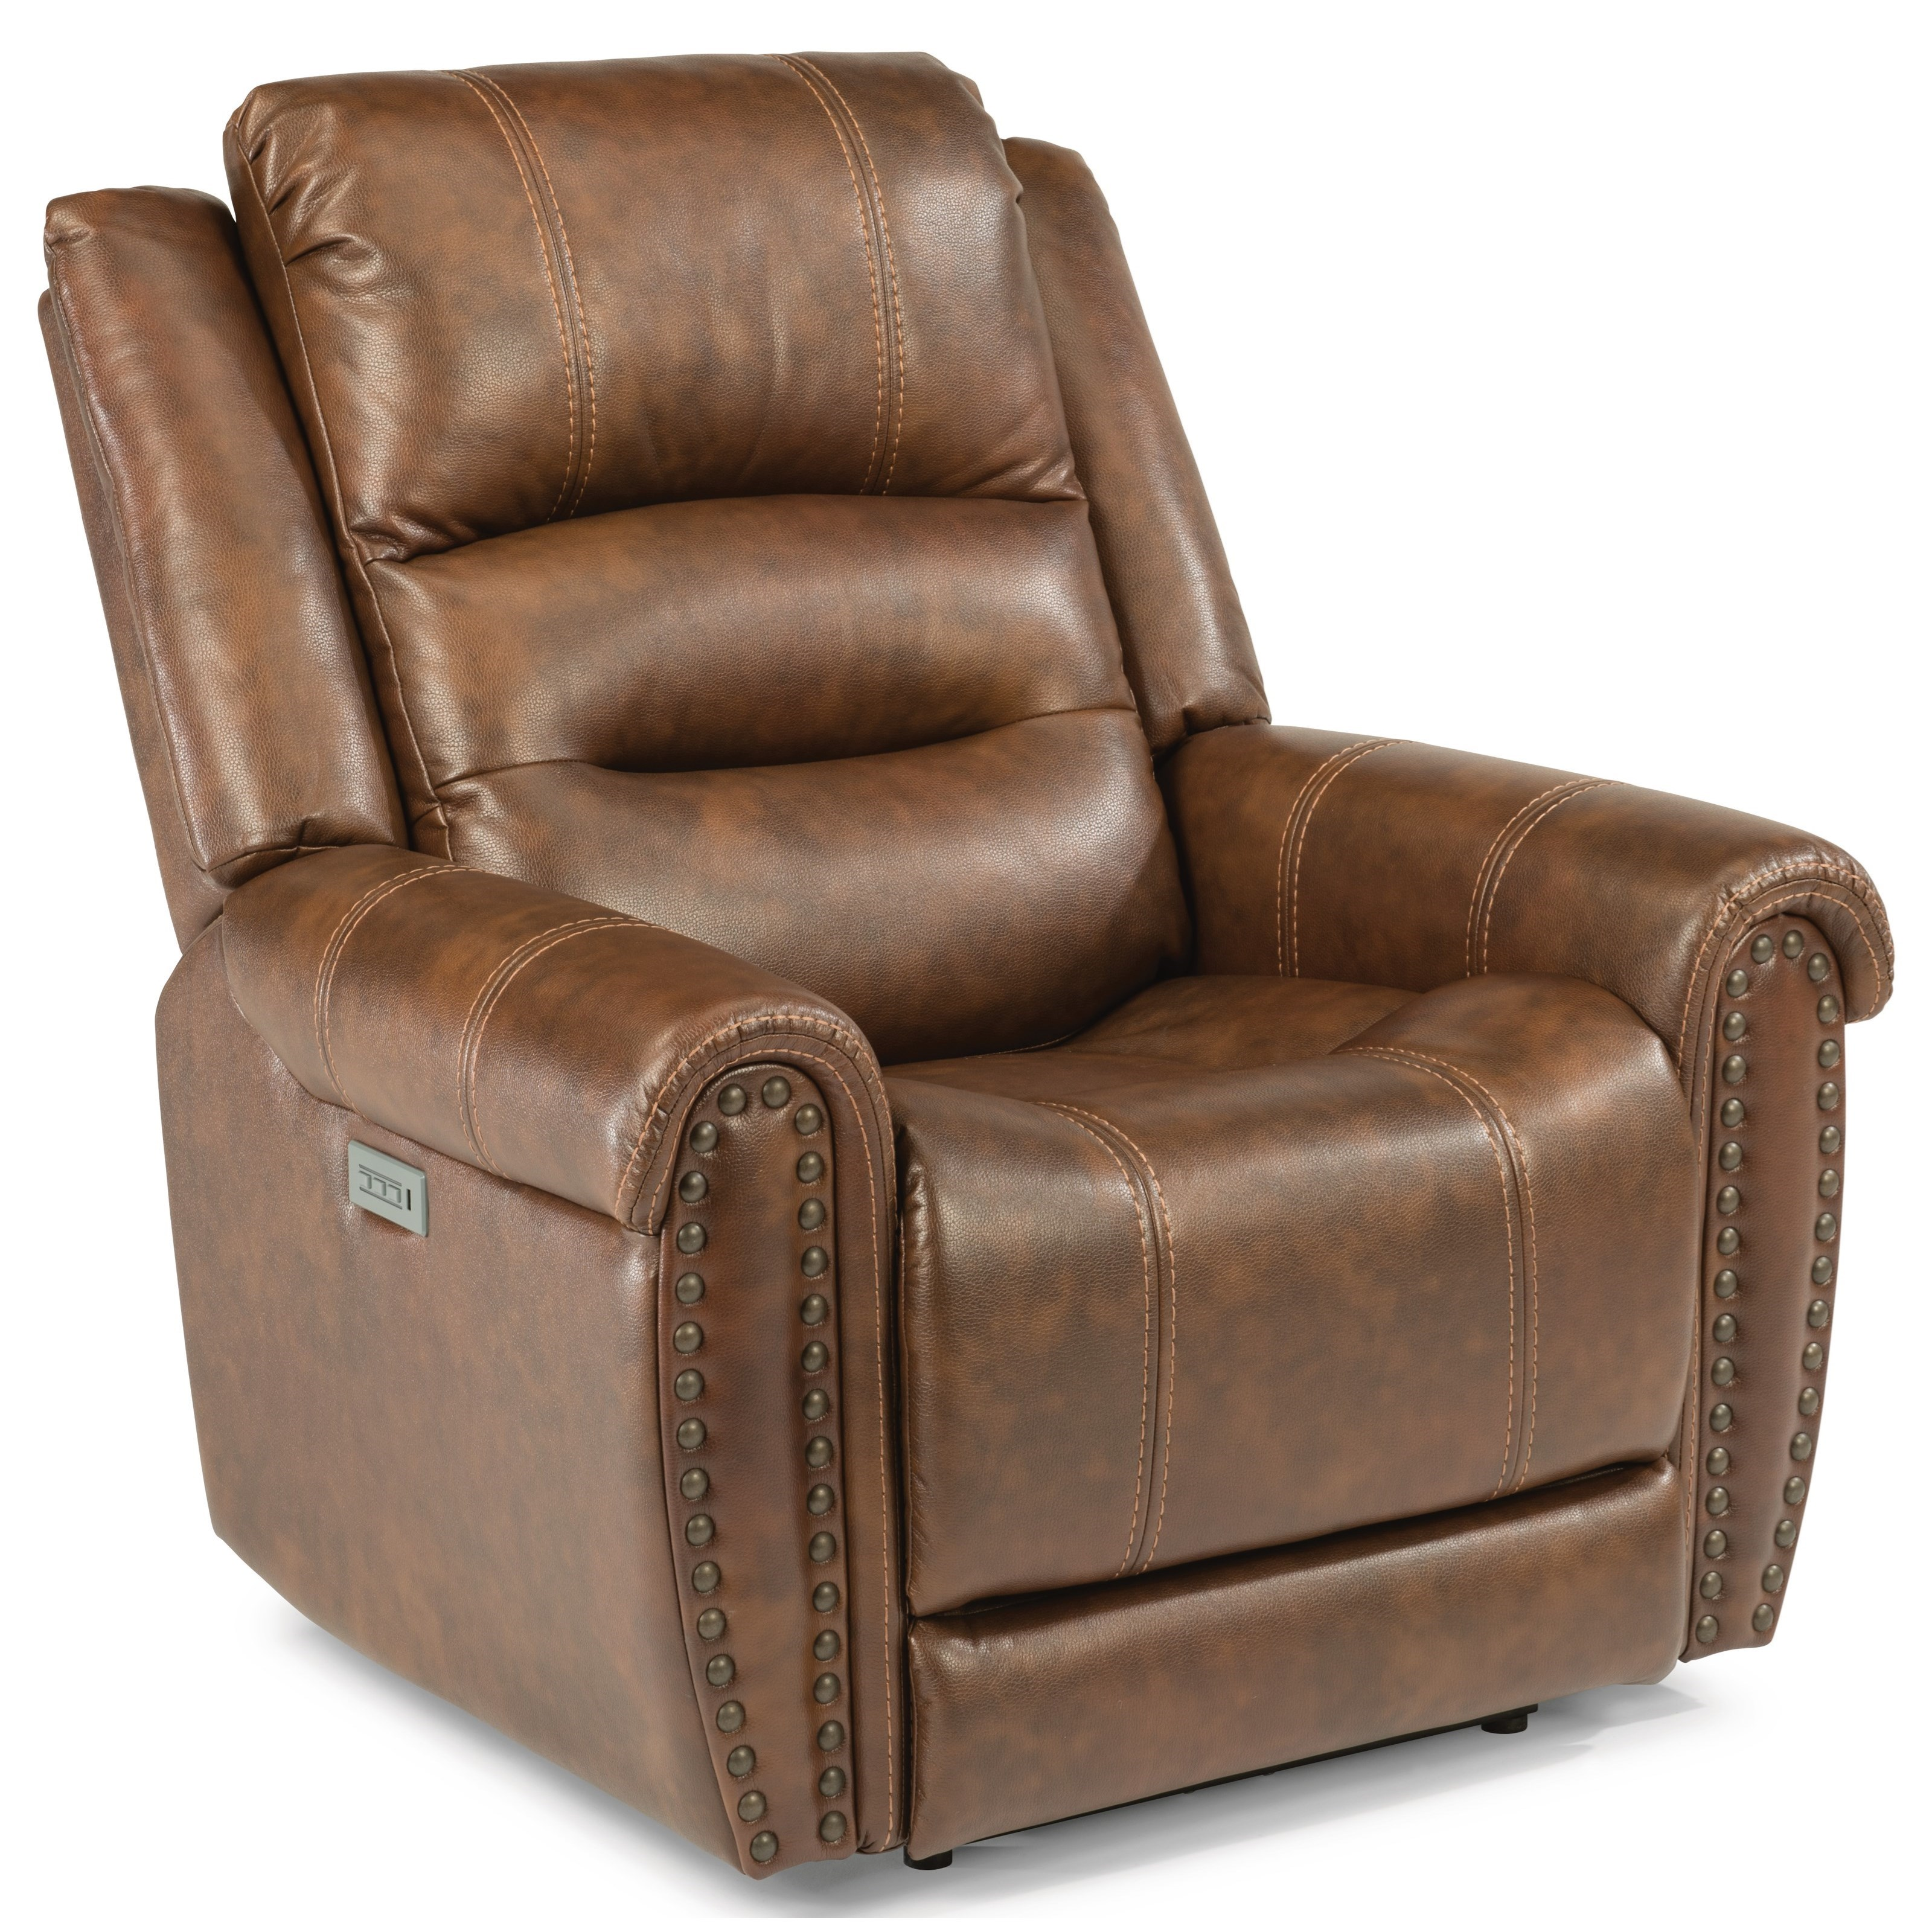 Electric Recliner Leather Chairs Latitudes Oscar Power Recliner With Power Headrest And Lumbar Support By Flexsteel At Dunk Bright Furniture